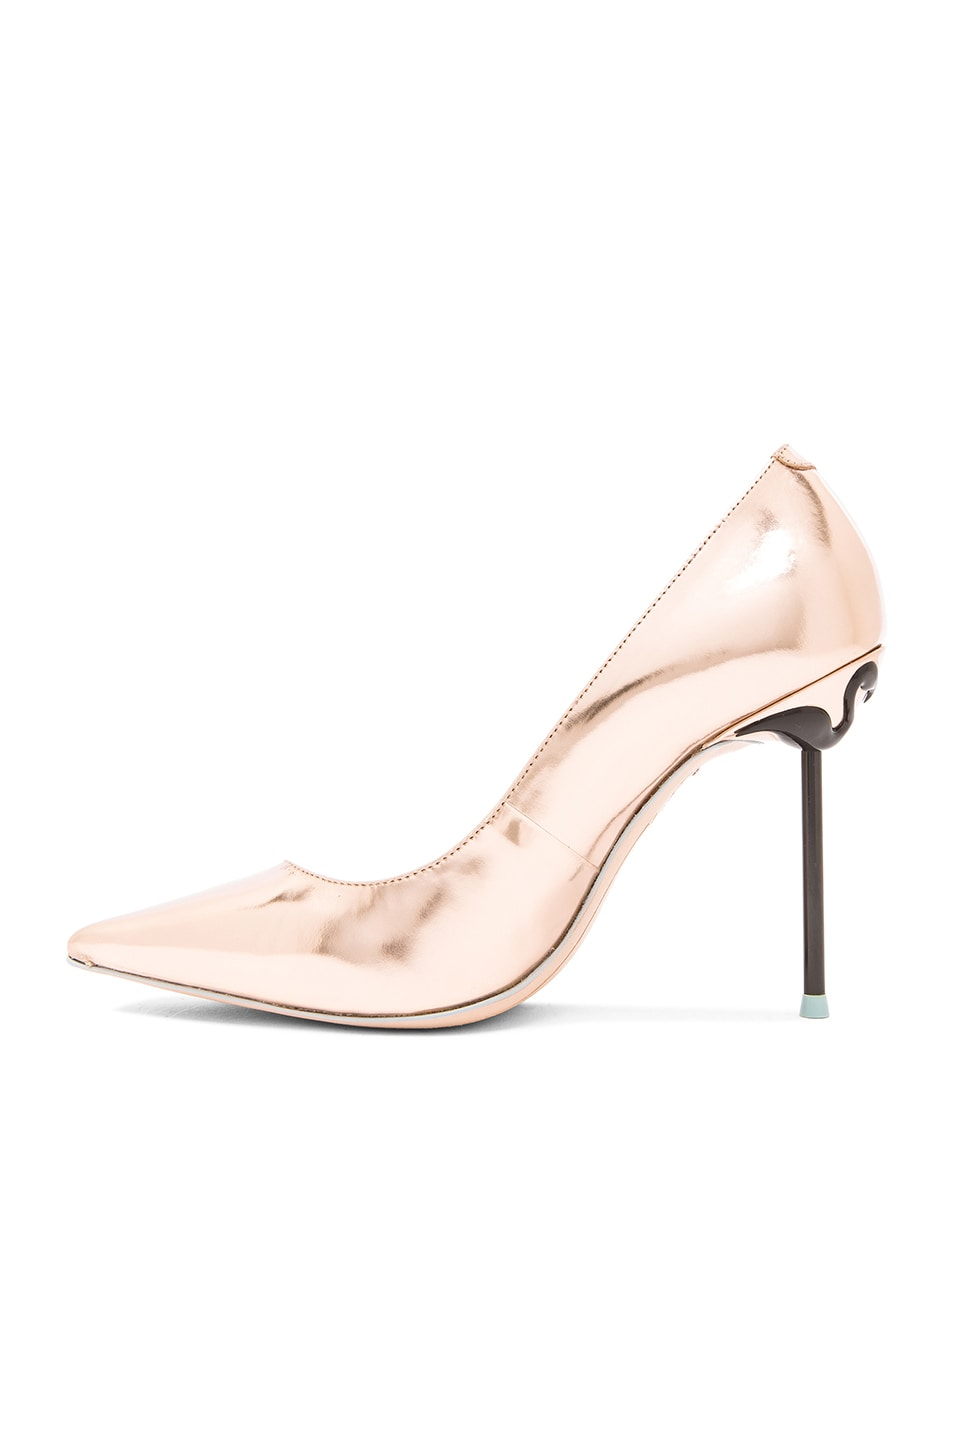 Image 5 of Sophia Webster Coco Flamingo Leather Heels in Rose Gold